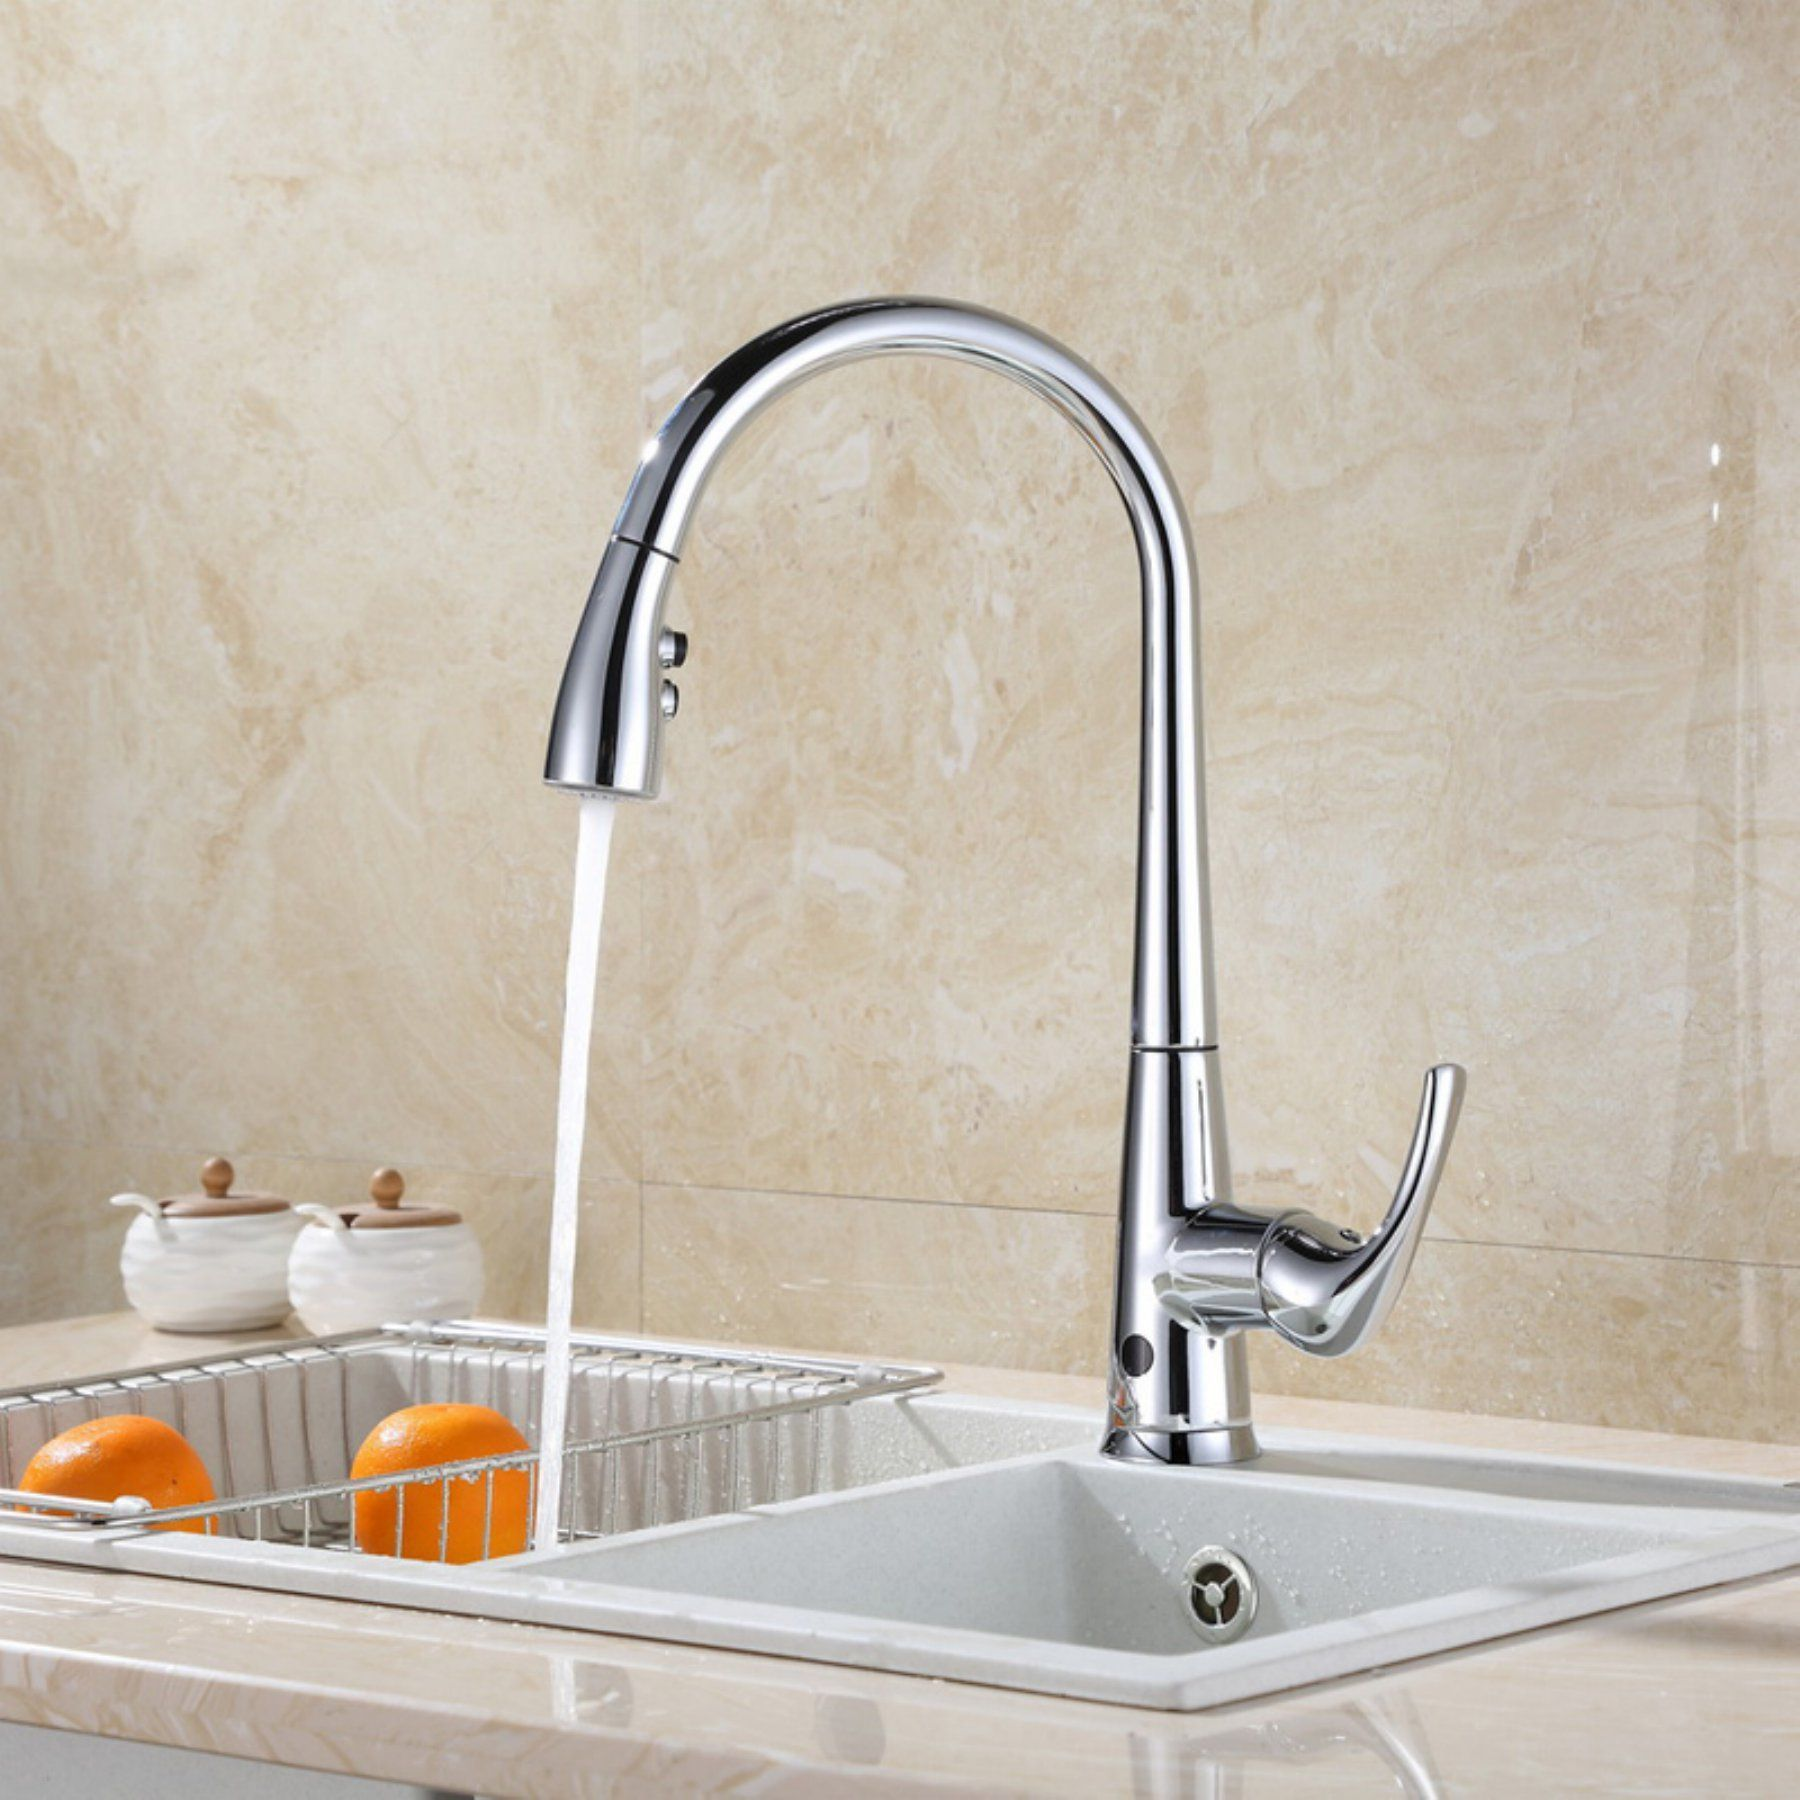 RunFine Group Hands Free Pull Down Kitchen Faucet - RF411003 ...